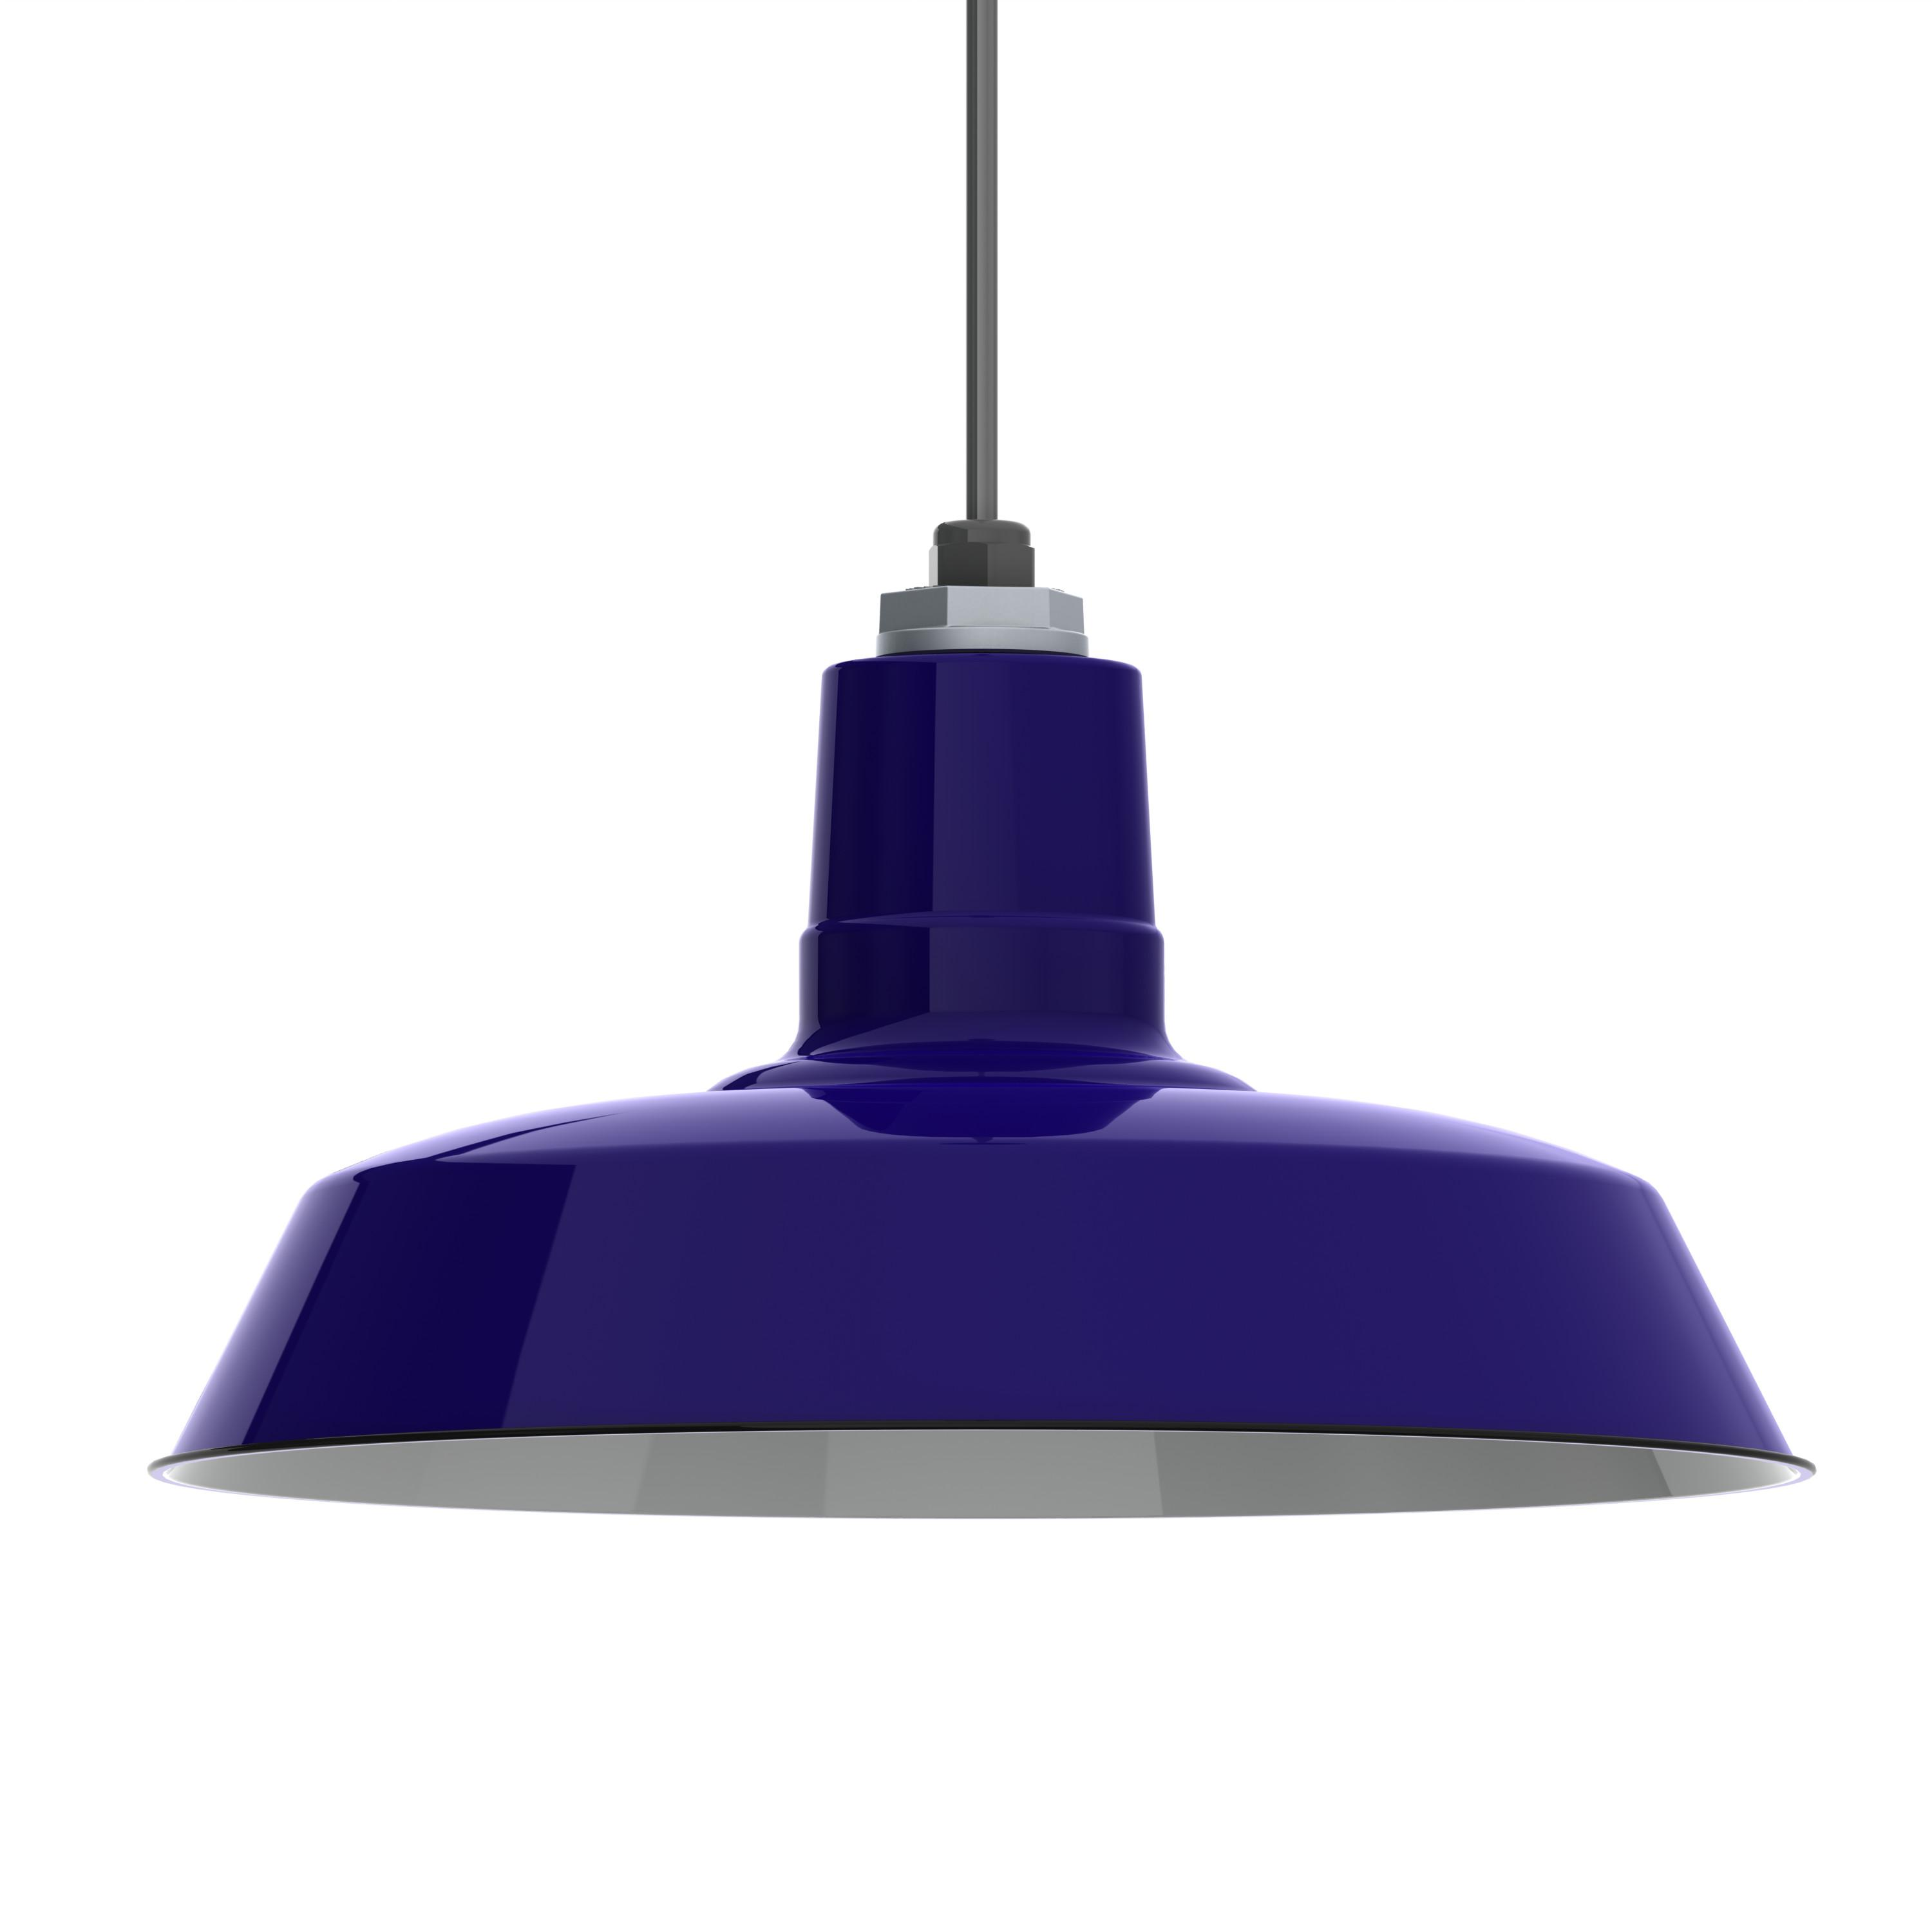 Ivanhoe Sky Chief Porcelain Enamel Pendant Barn Light